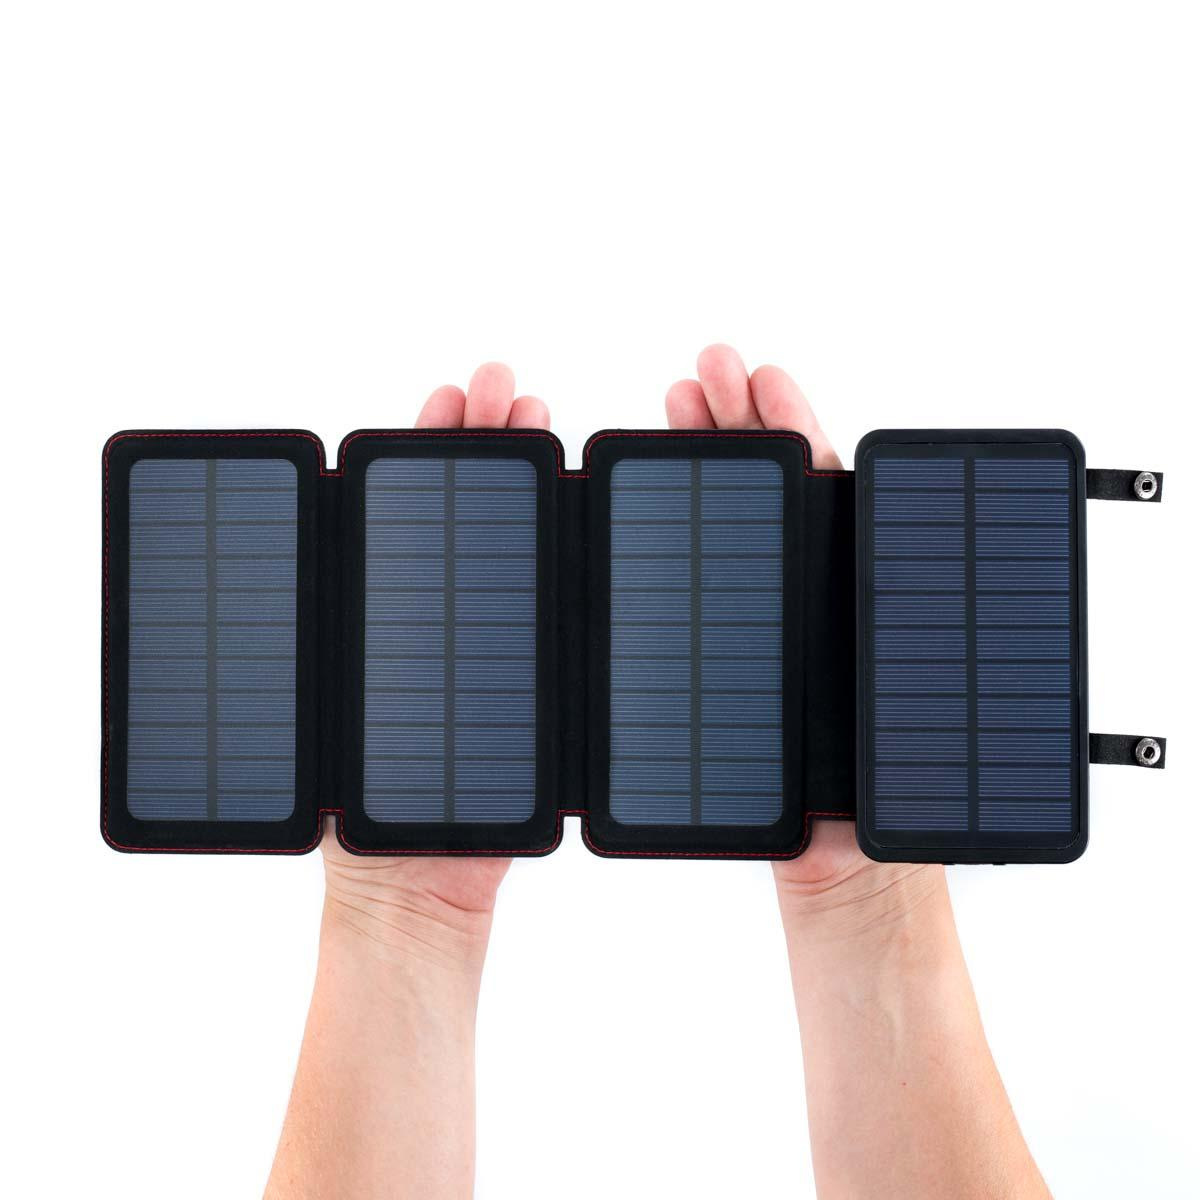 QuadraPro Solar Power Bank with Wireless & Dual USB Charging